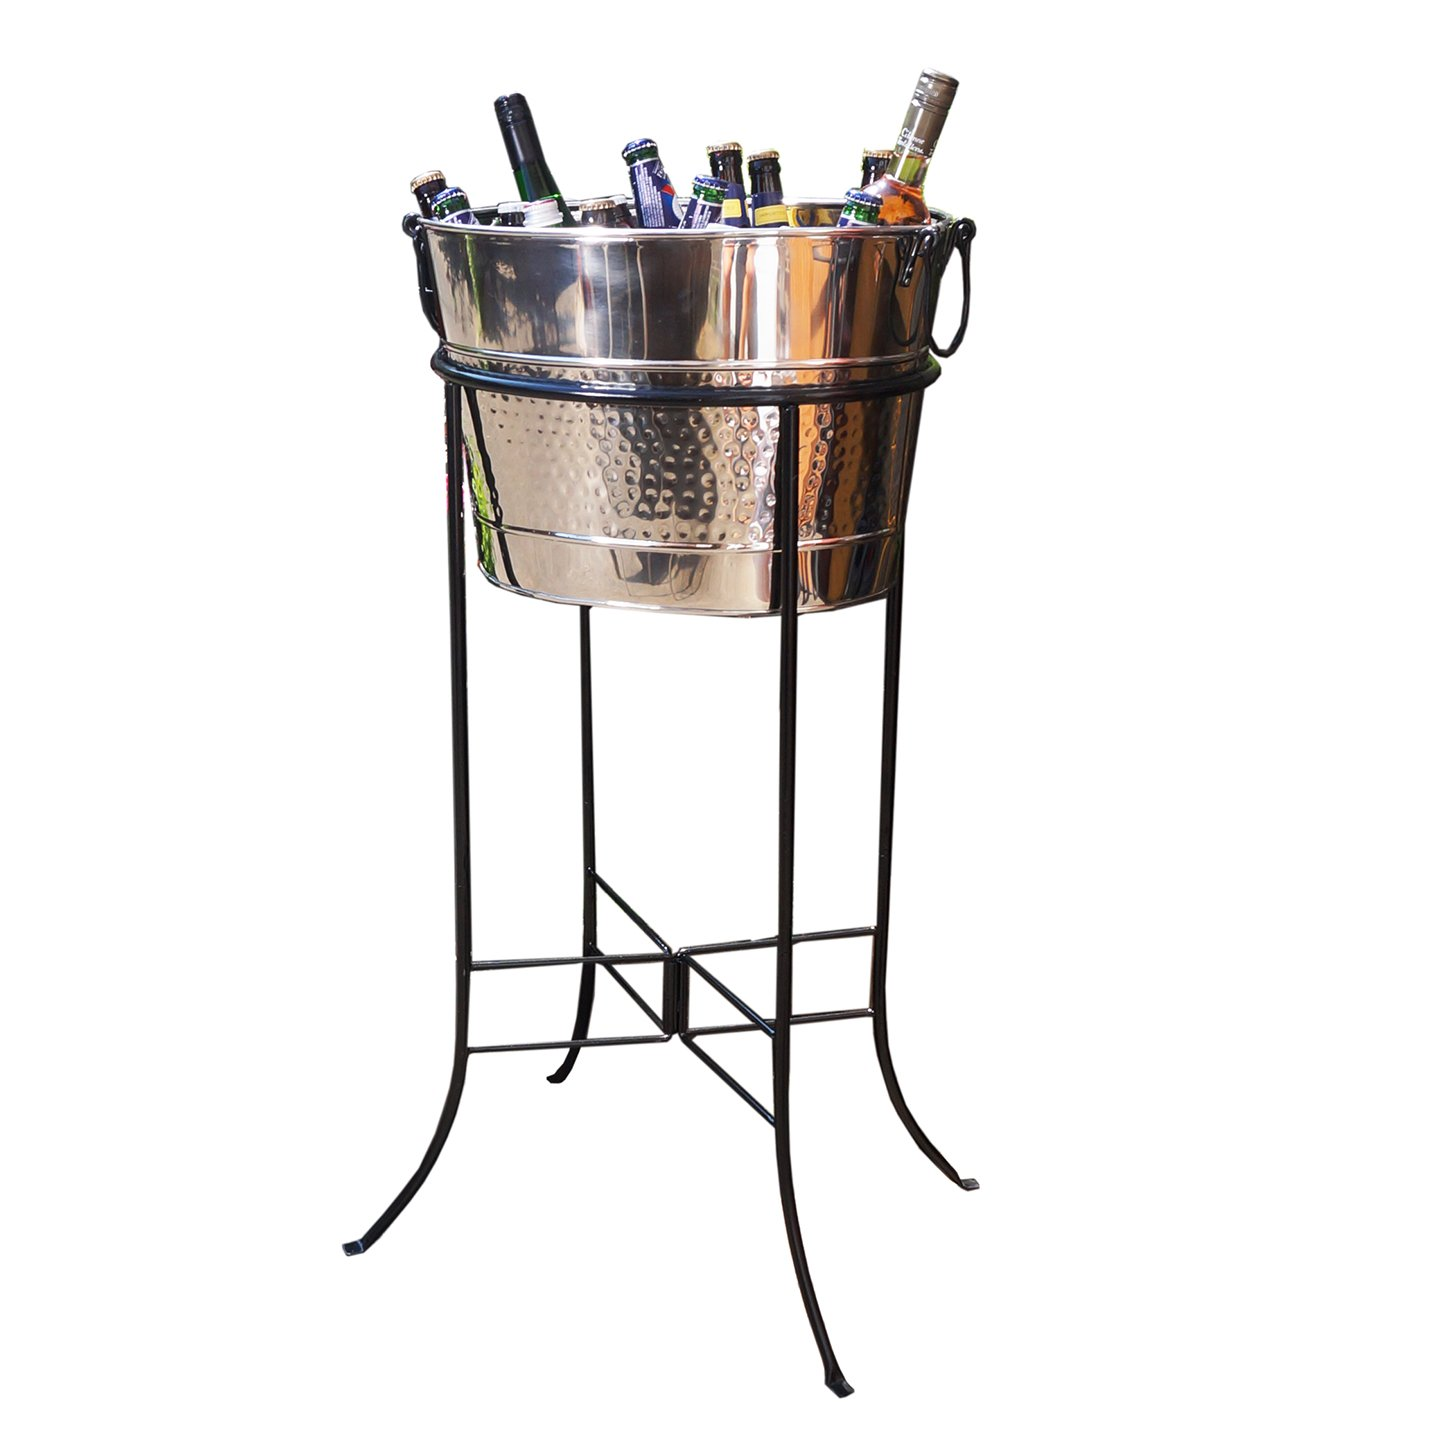 BREKX Hammered Stainless Steel Silver Beverage Tub with Black Iron Stand - Large Party Accessory